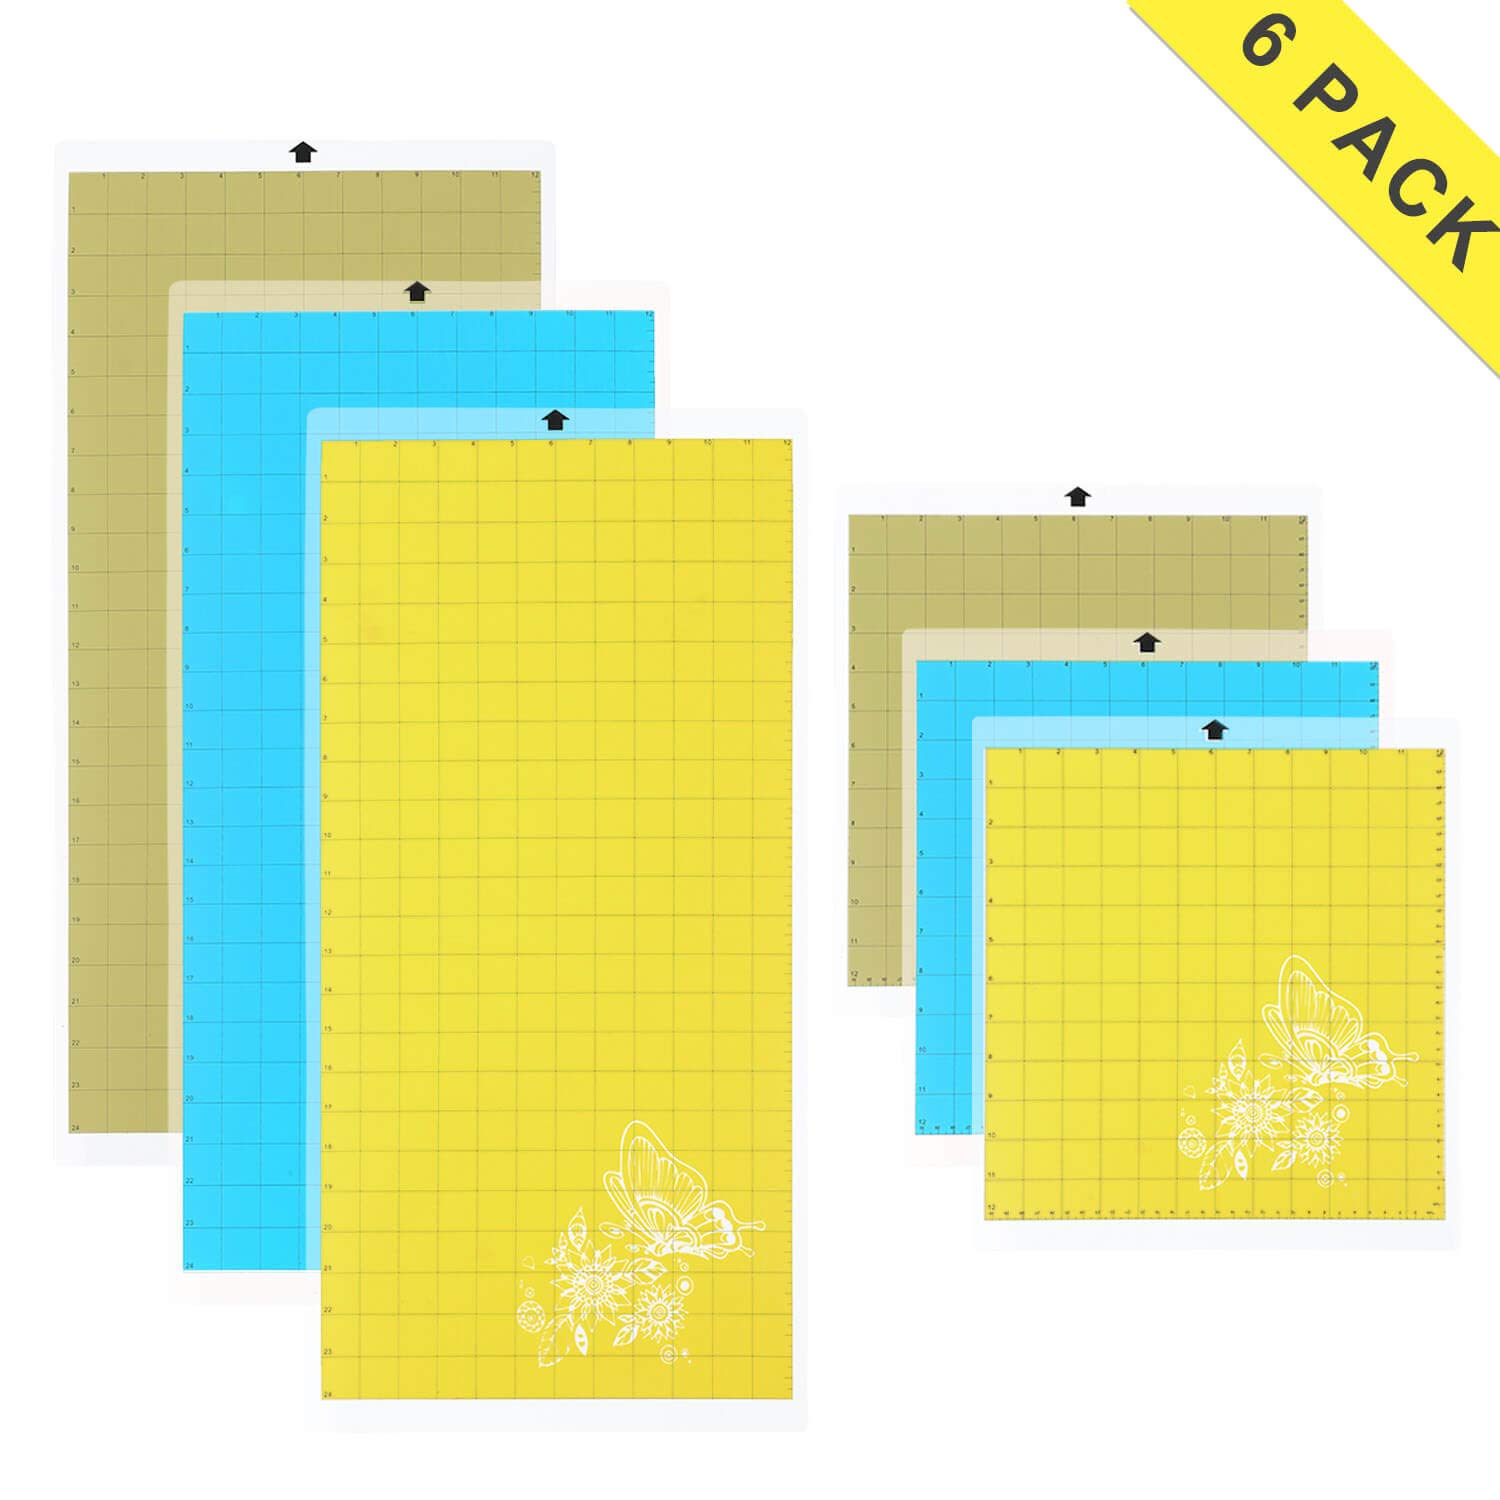 Cutting Mat Variety 6 Packs Adhesive Replacement - Strong, Standard, Light Grip Suit for Cricut, Silhouette, 12in x 12in x 3 Packs, 12in x 24in x 3 Packs.